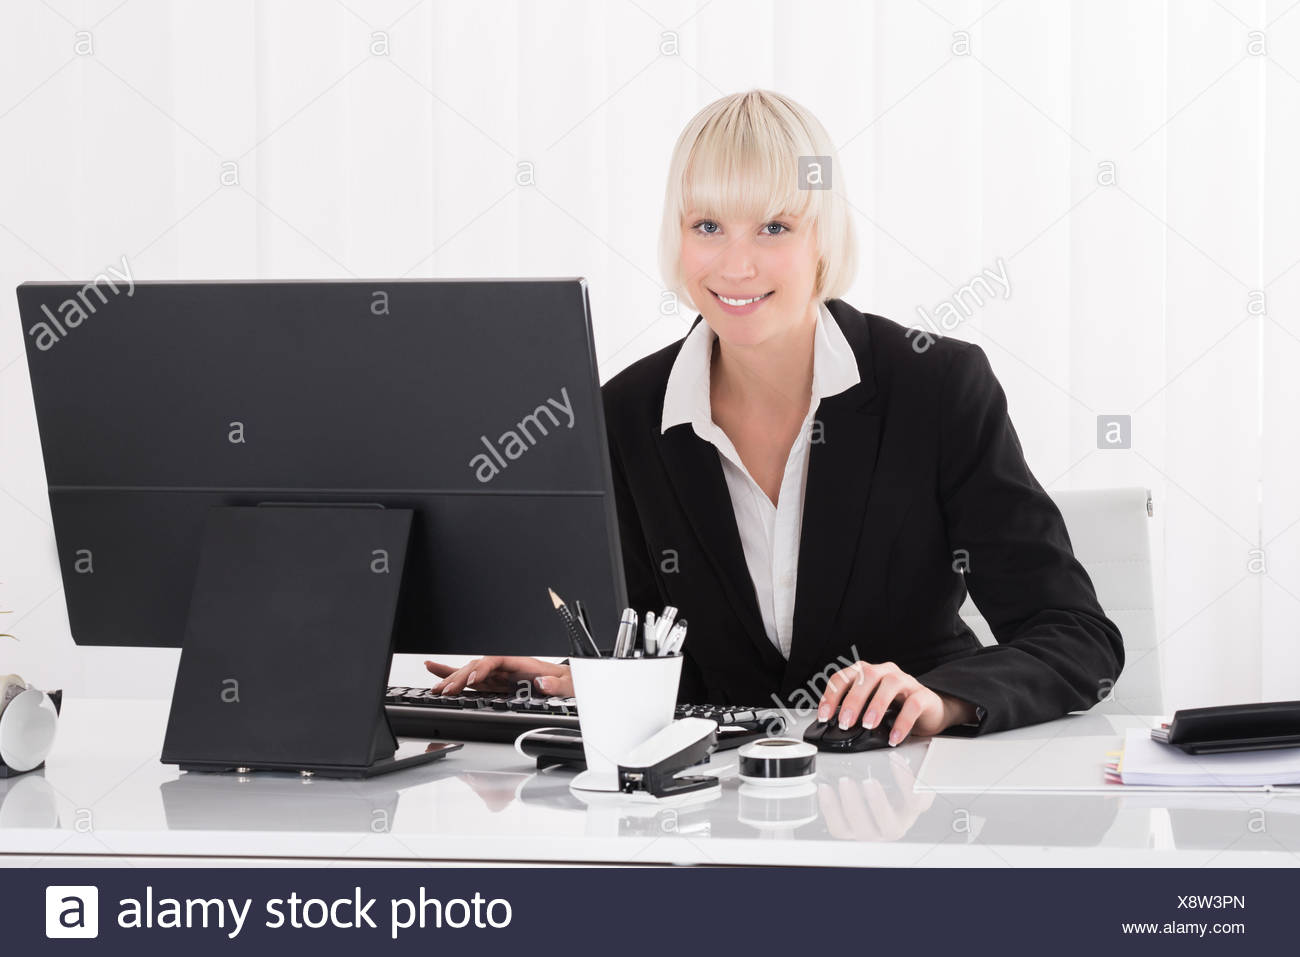 Businesswoman Working On Computer - Stock Image